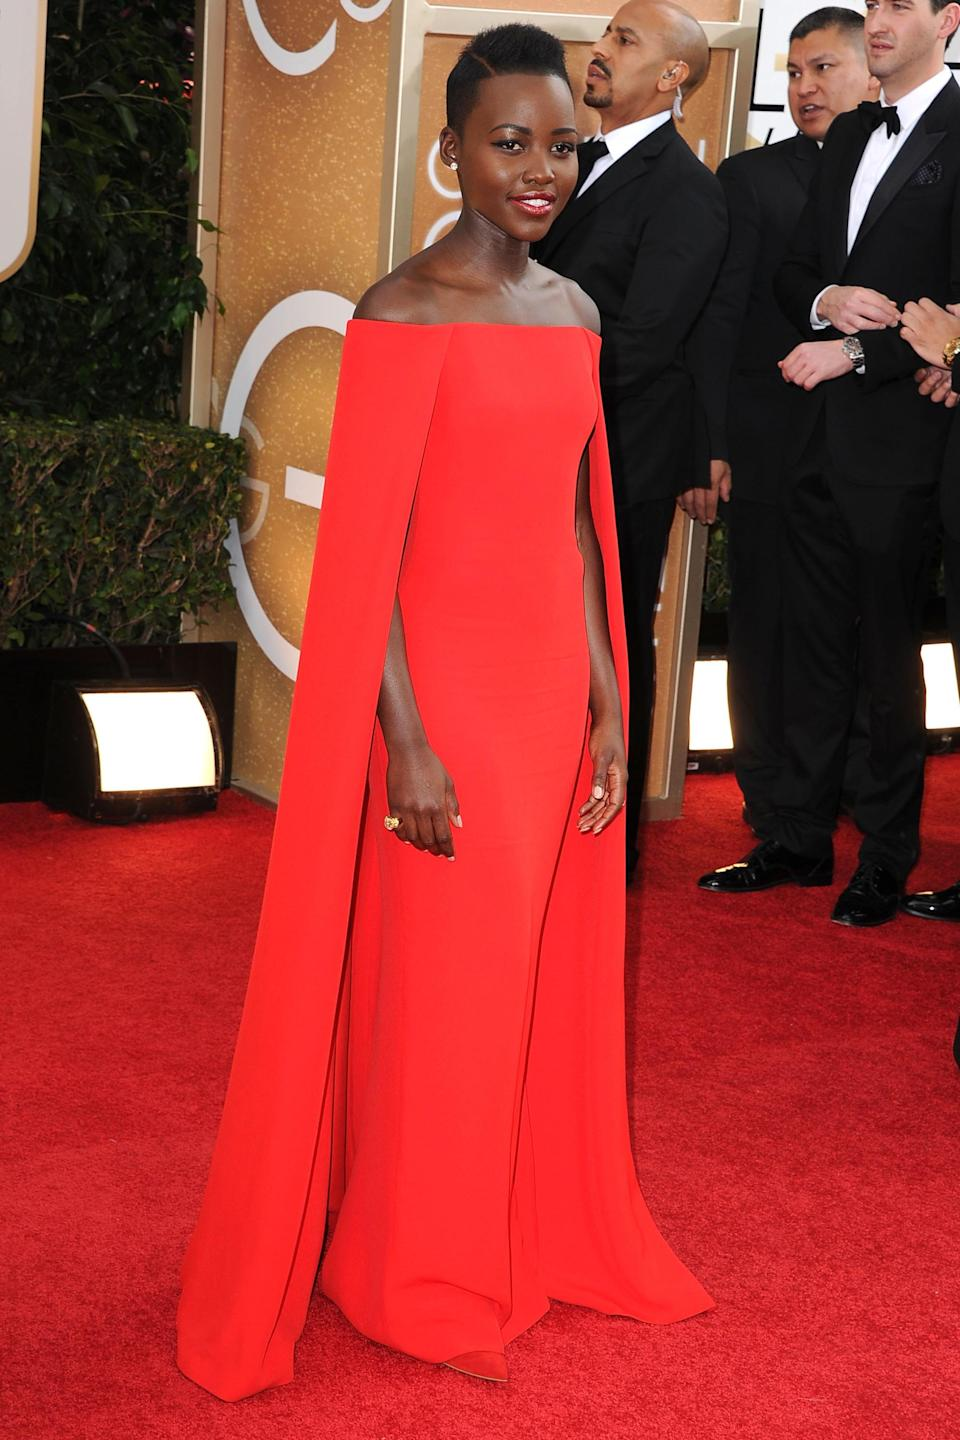 """<strong><h2>2014</h2></strong><br>For a Golden Globes first-timer, Lupita Nyong'o walked this red carpet like a seasoned pro — or rather, a superhero, in this cape-like gown by Ralph Lauren.<br><br><em>Lupita Nyong'o in Ralph Lauren.</em><span class=""""copyright"""">Photo: Steve Granitz/WireImage.</span>"""